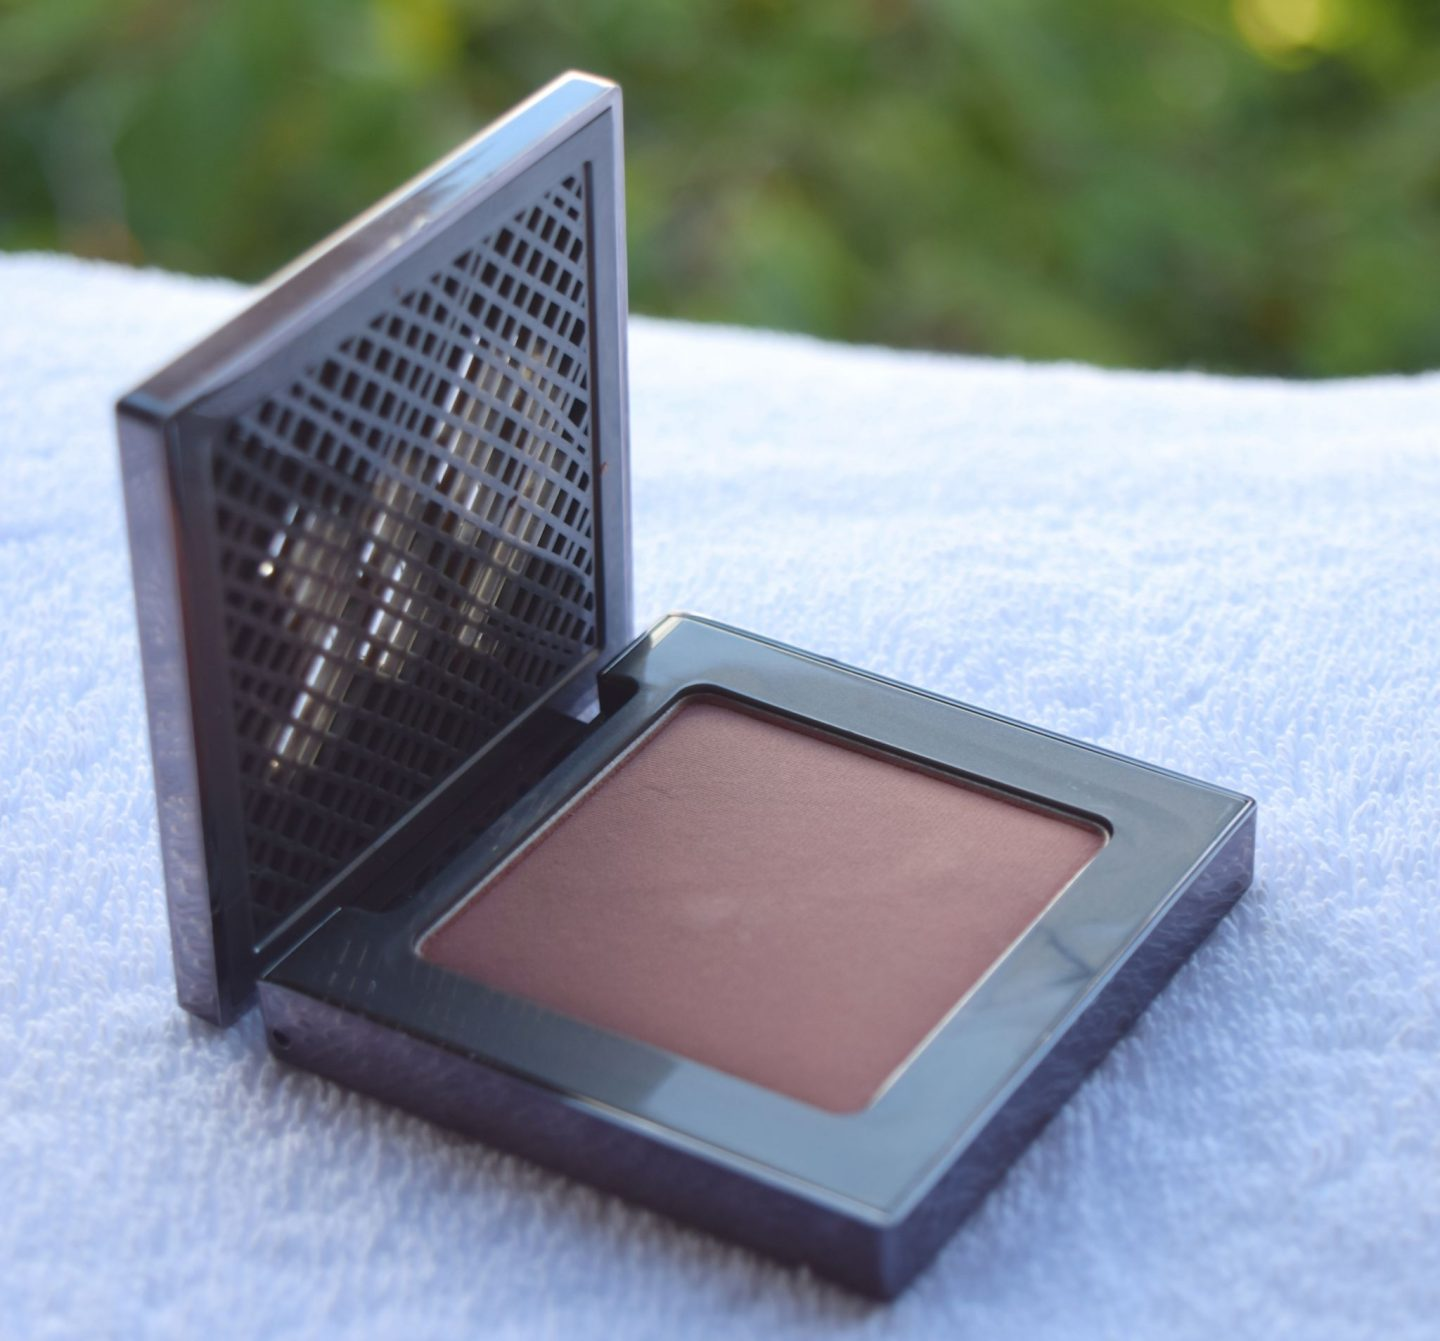 Urban Decay 8 hour Afterglow Blush Indecent 2